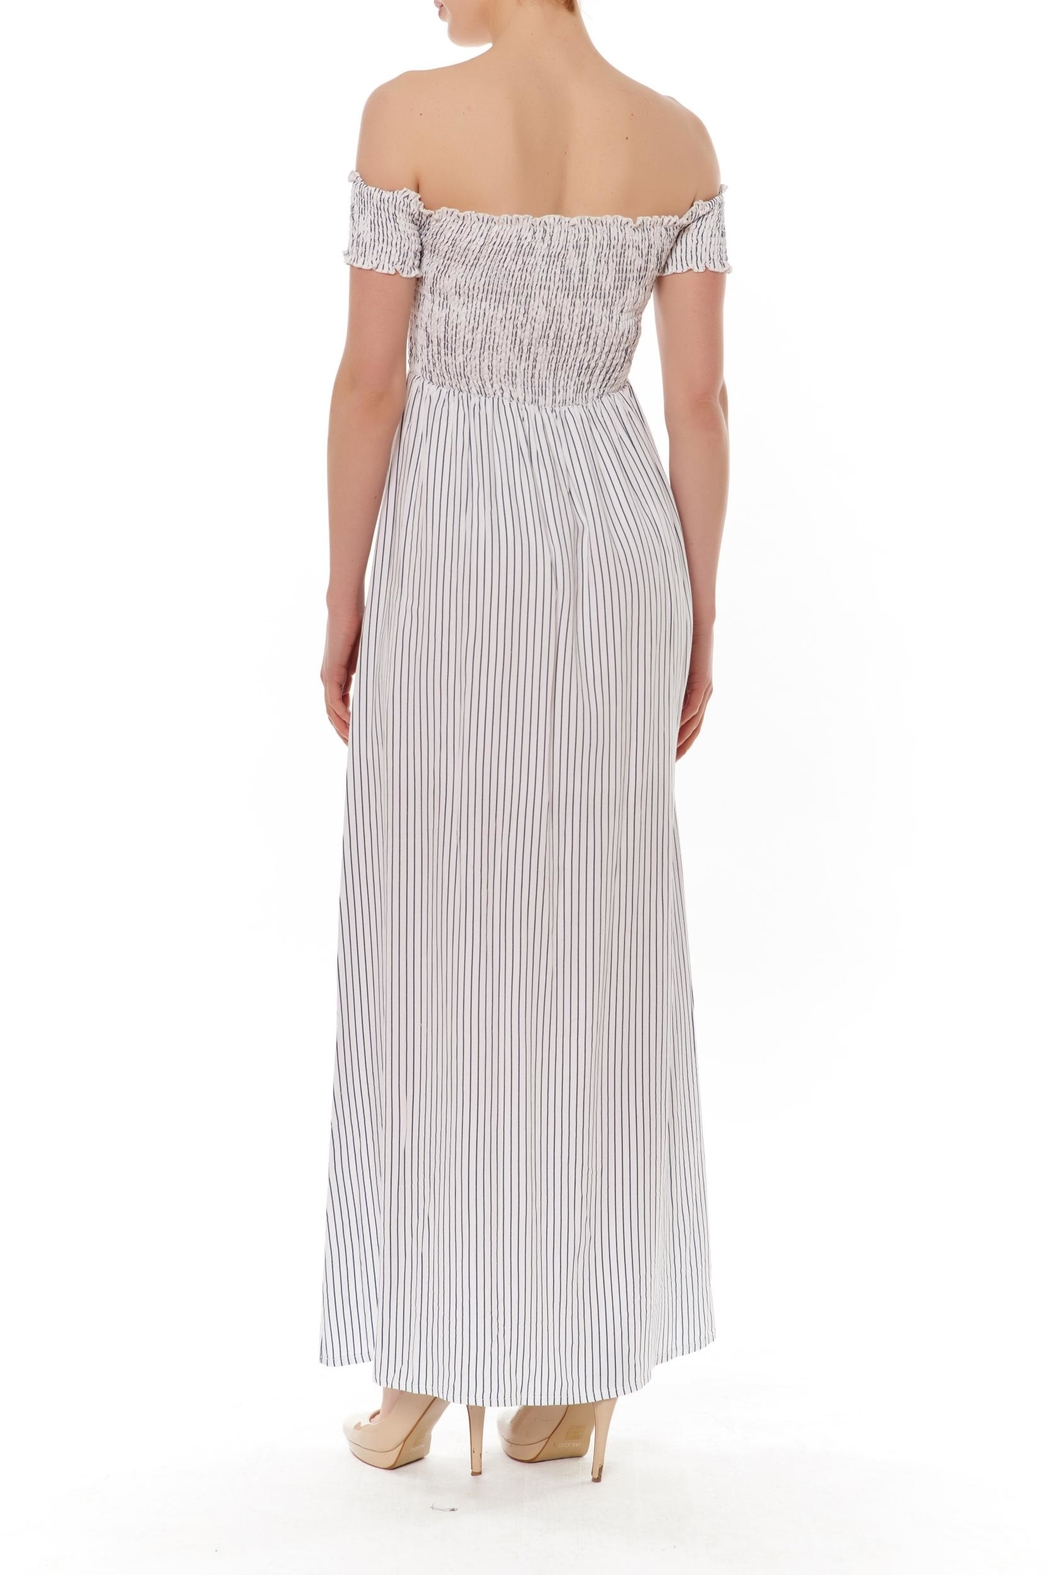 English Factory Off-Shoulder Maxi Dress - Front Full Image